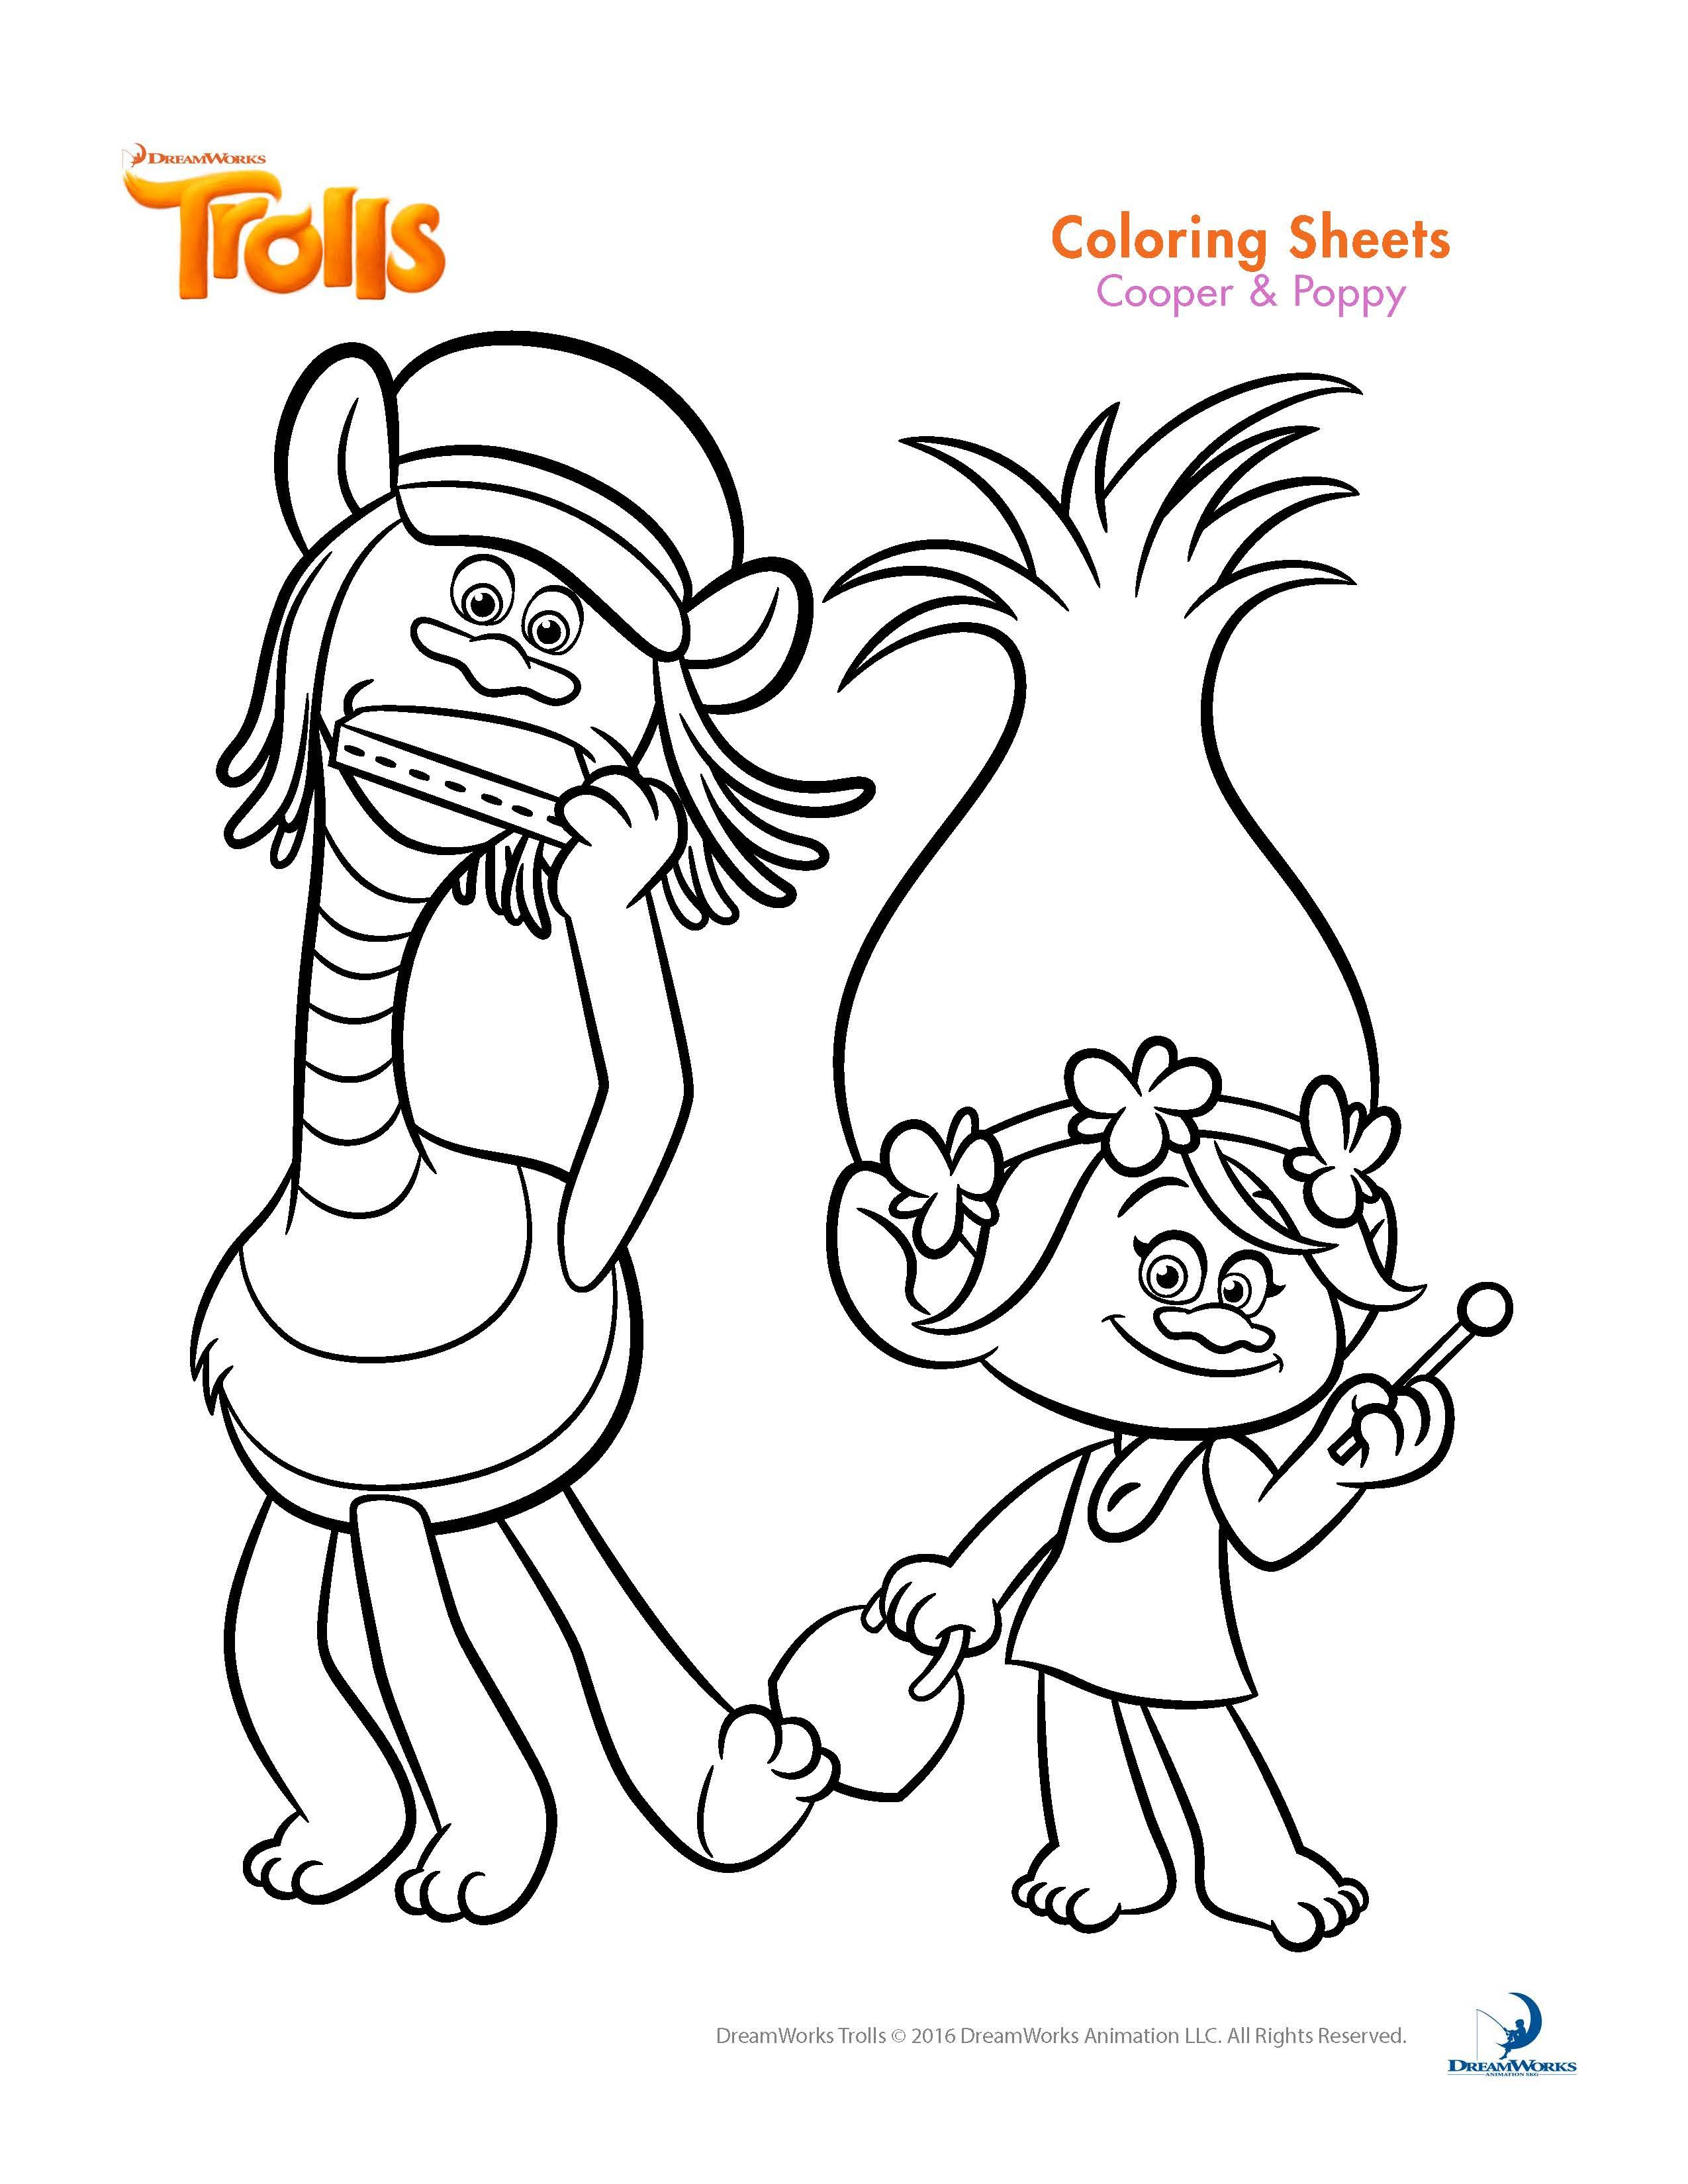 Trolls Coloring Pages And Printable Activity Sheets Disney